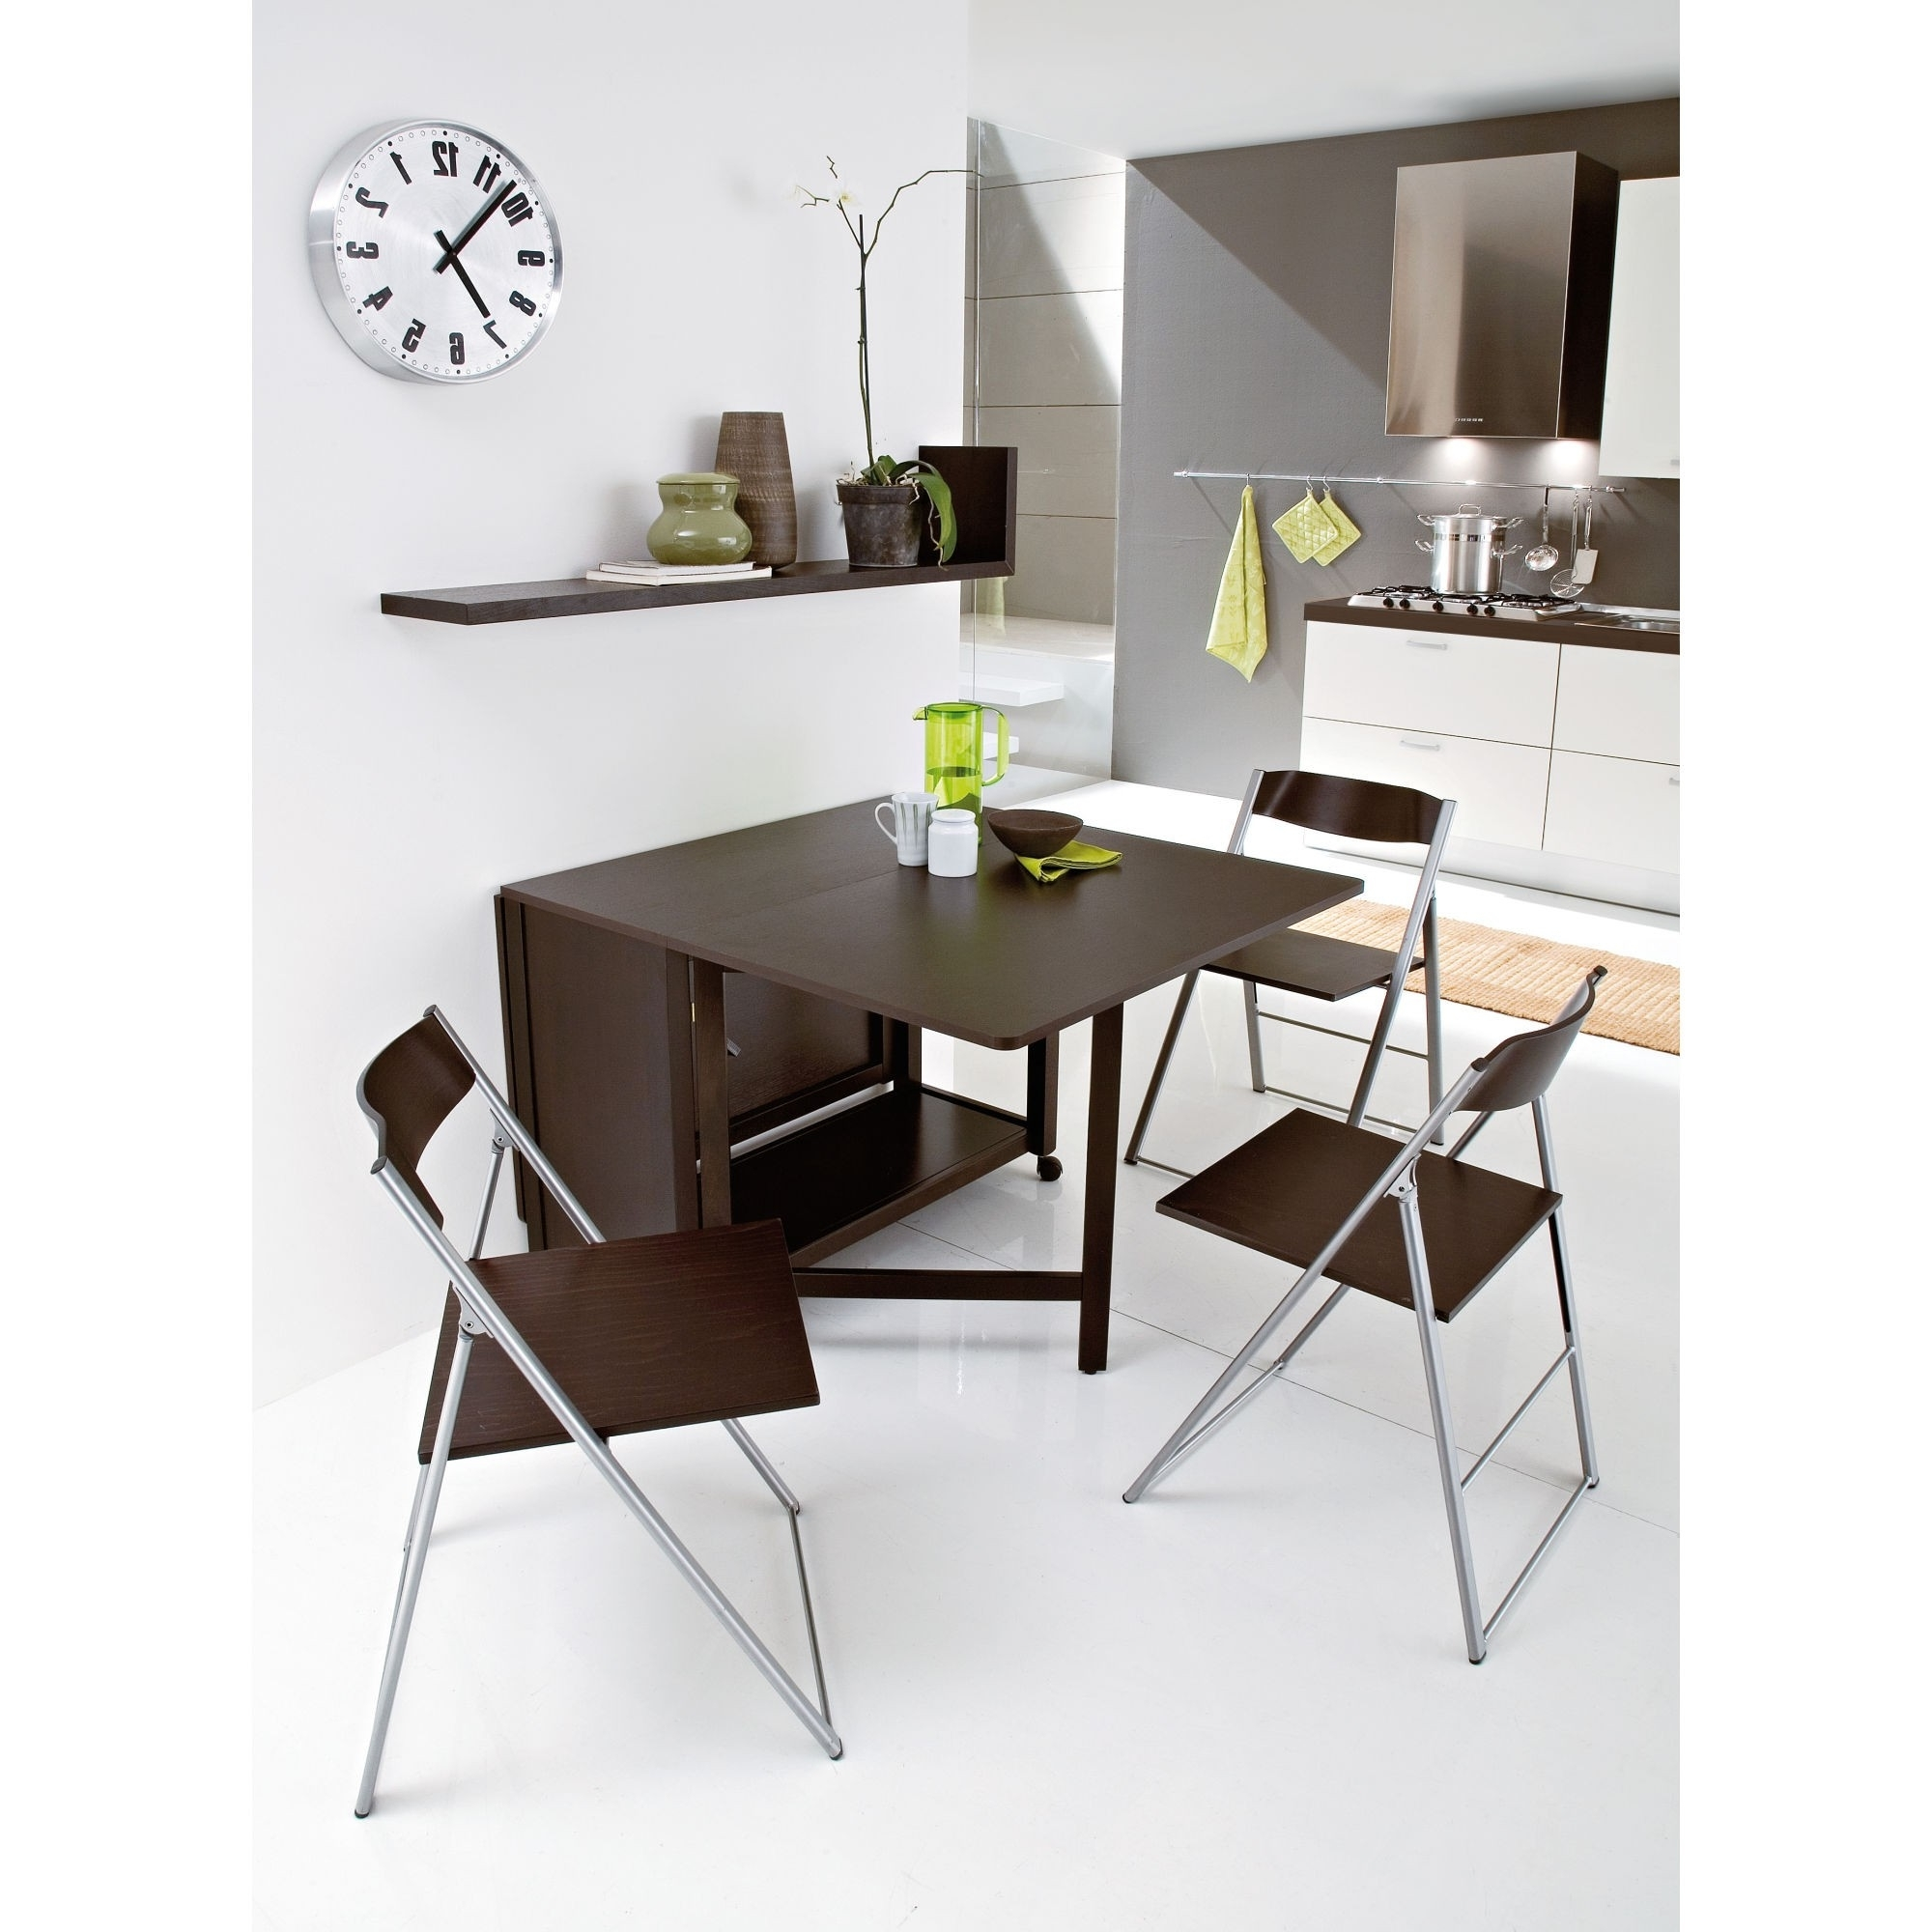 Modern Folding Wood And Metal Furniture For Dining Area (View 13 of 25)